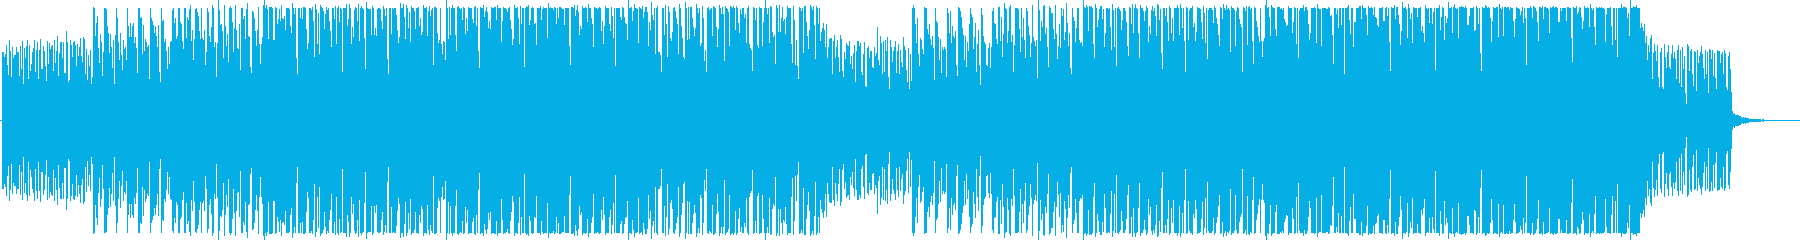 Refreshing and stylish corporate BGM's reproduced waveform